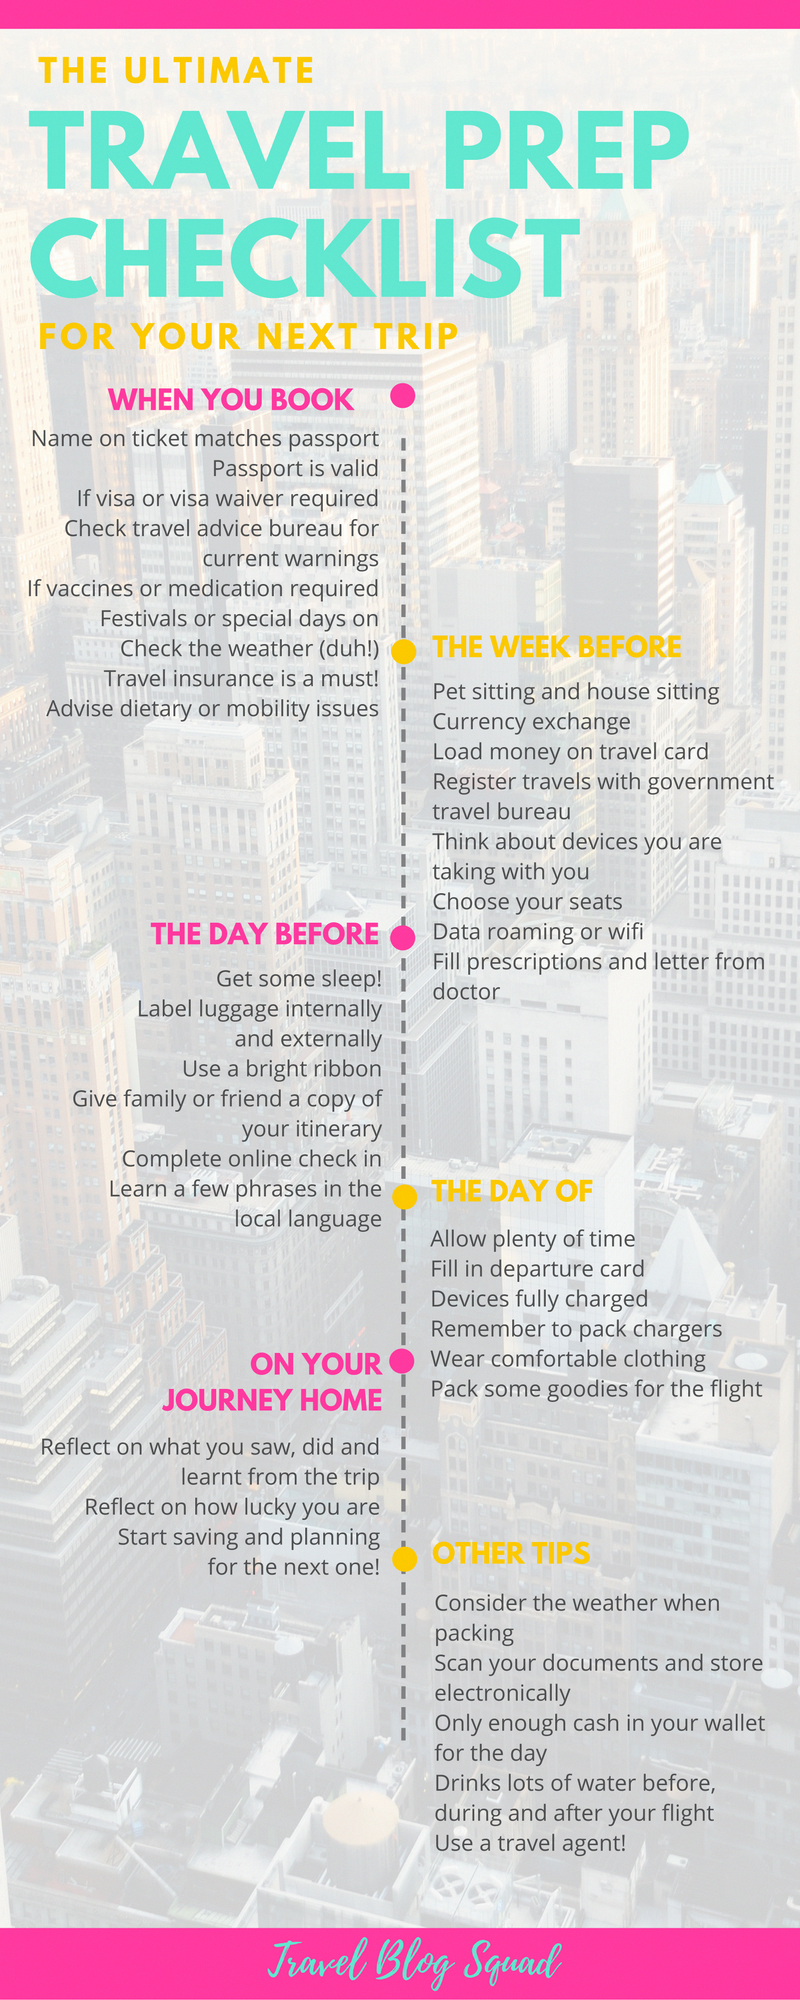 The Ultimate Travel Prep Checklist To Prepare For Your